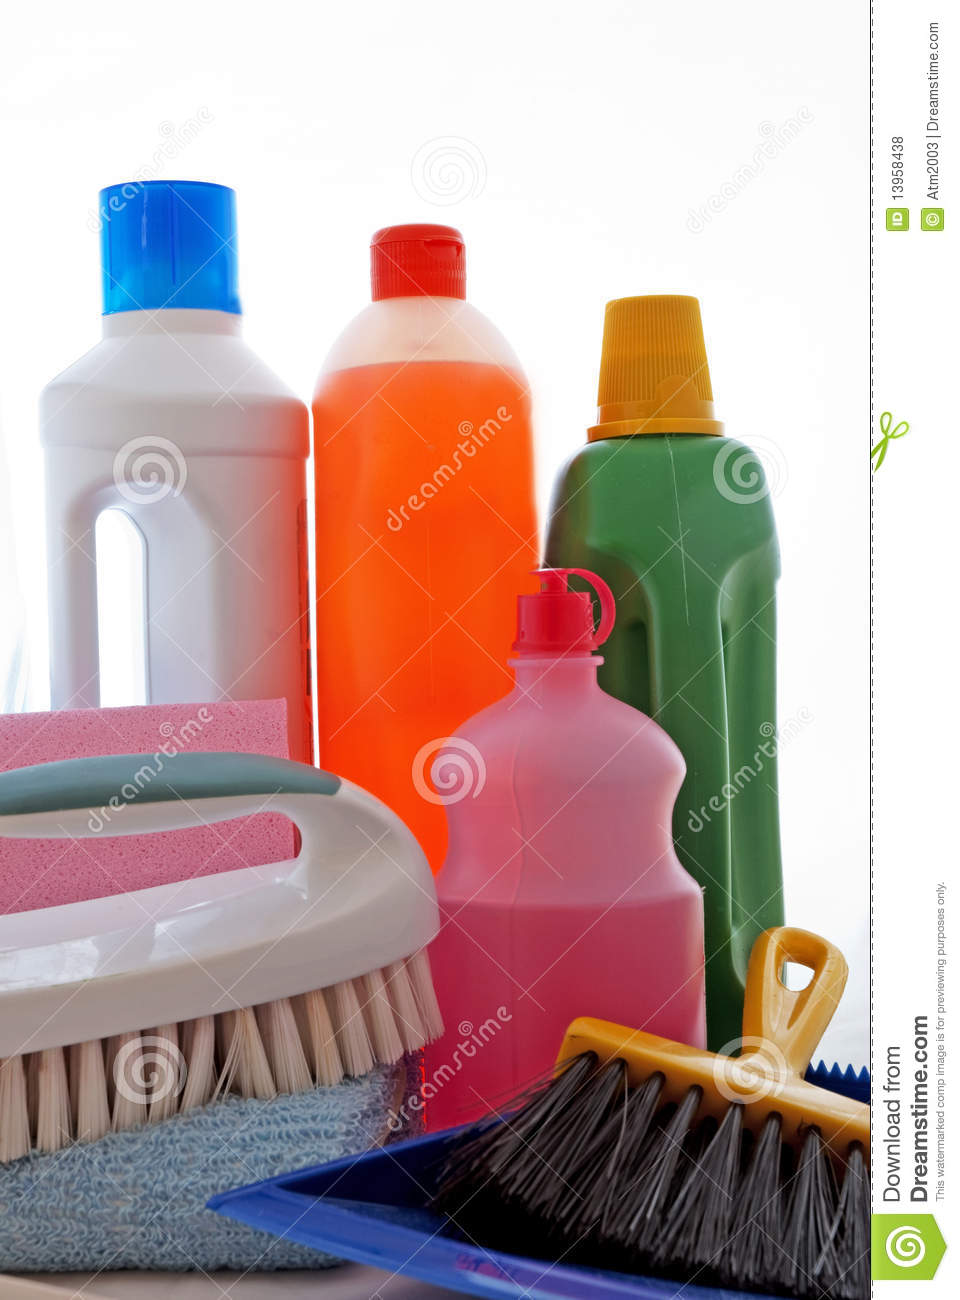 Cleaning royalty free stock photos image 13958438 for House cleaning stock photos